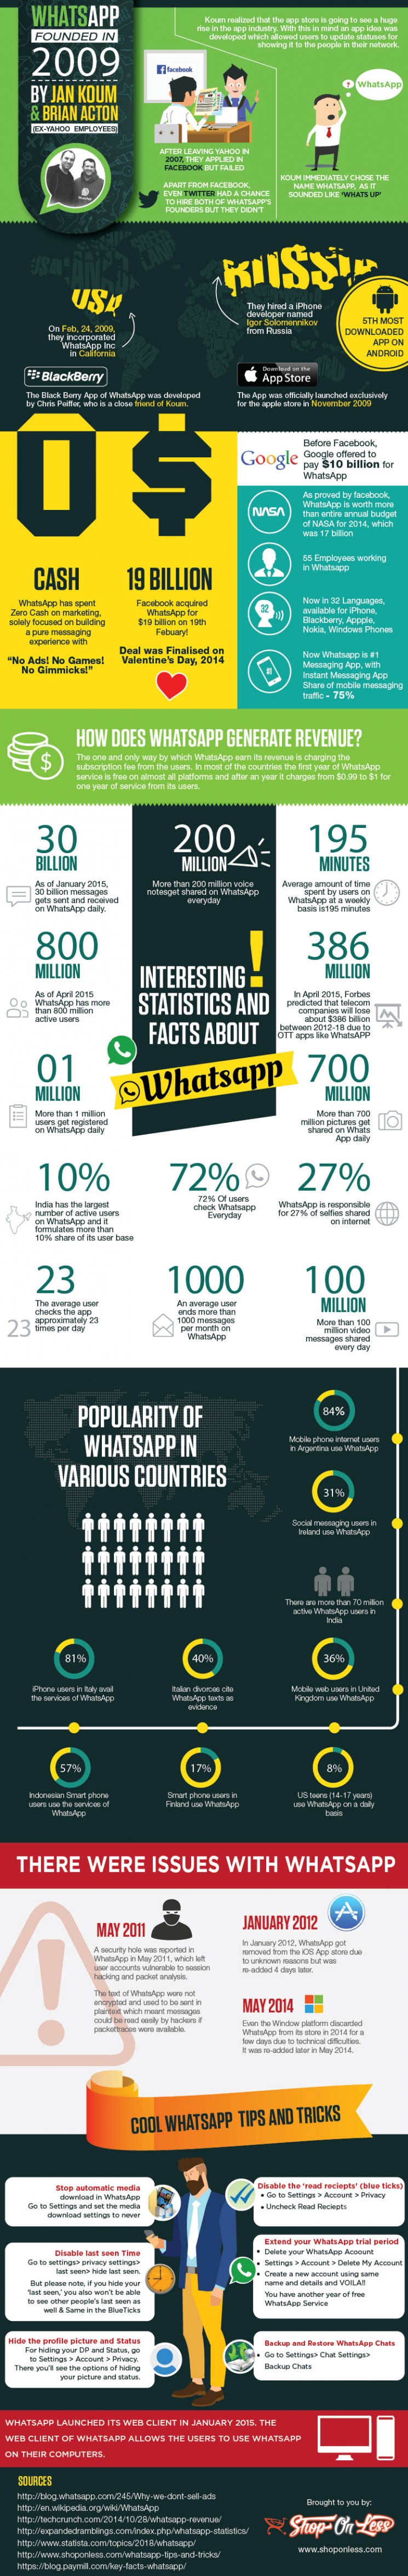 40+ Freaky Facts & Stats about Whatsapp